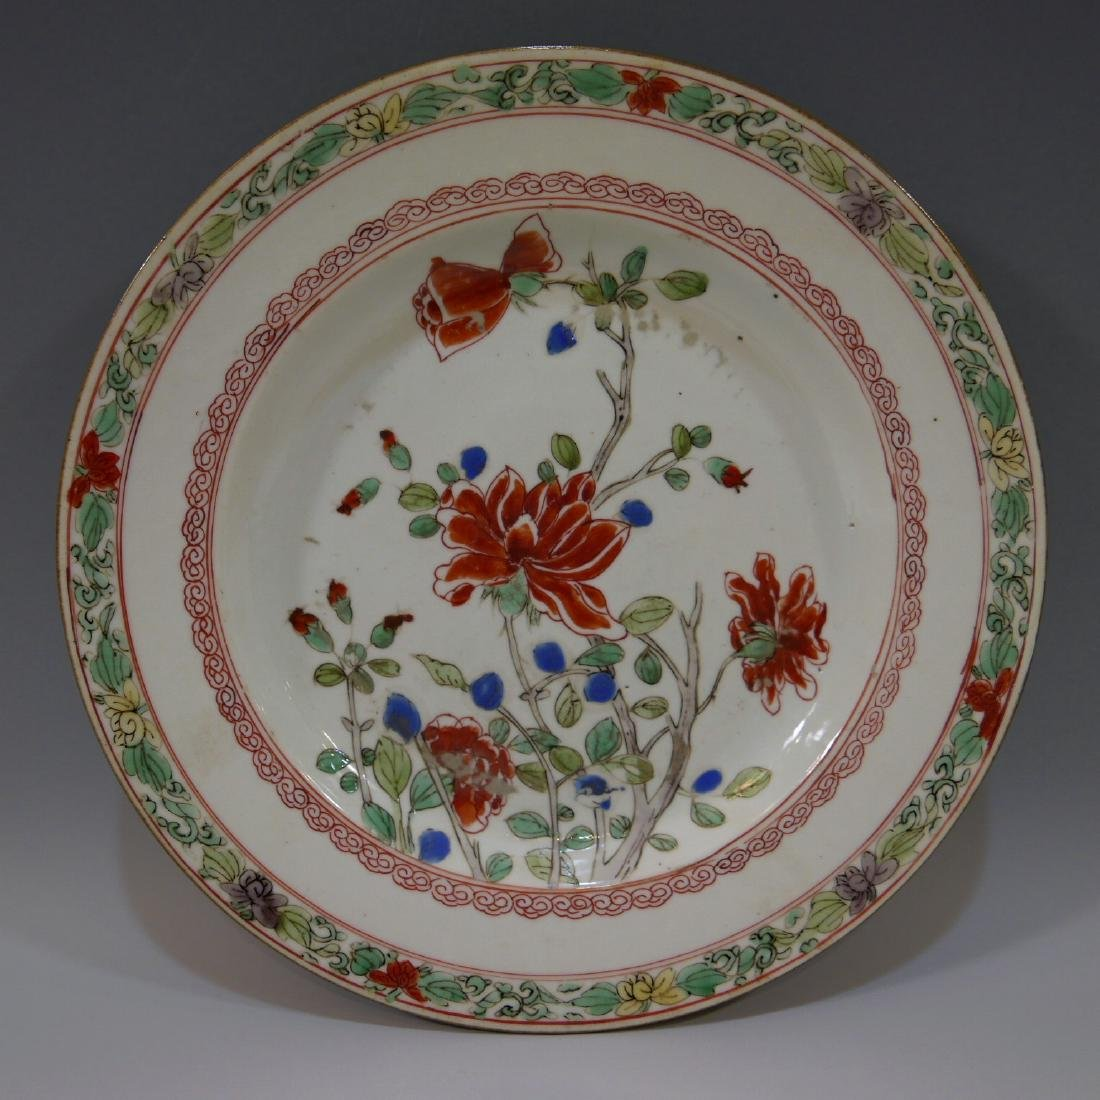 CHINESE ANTIQUE FAMILLE ROSE PORCELAIN PLATE - 17TH